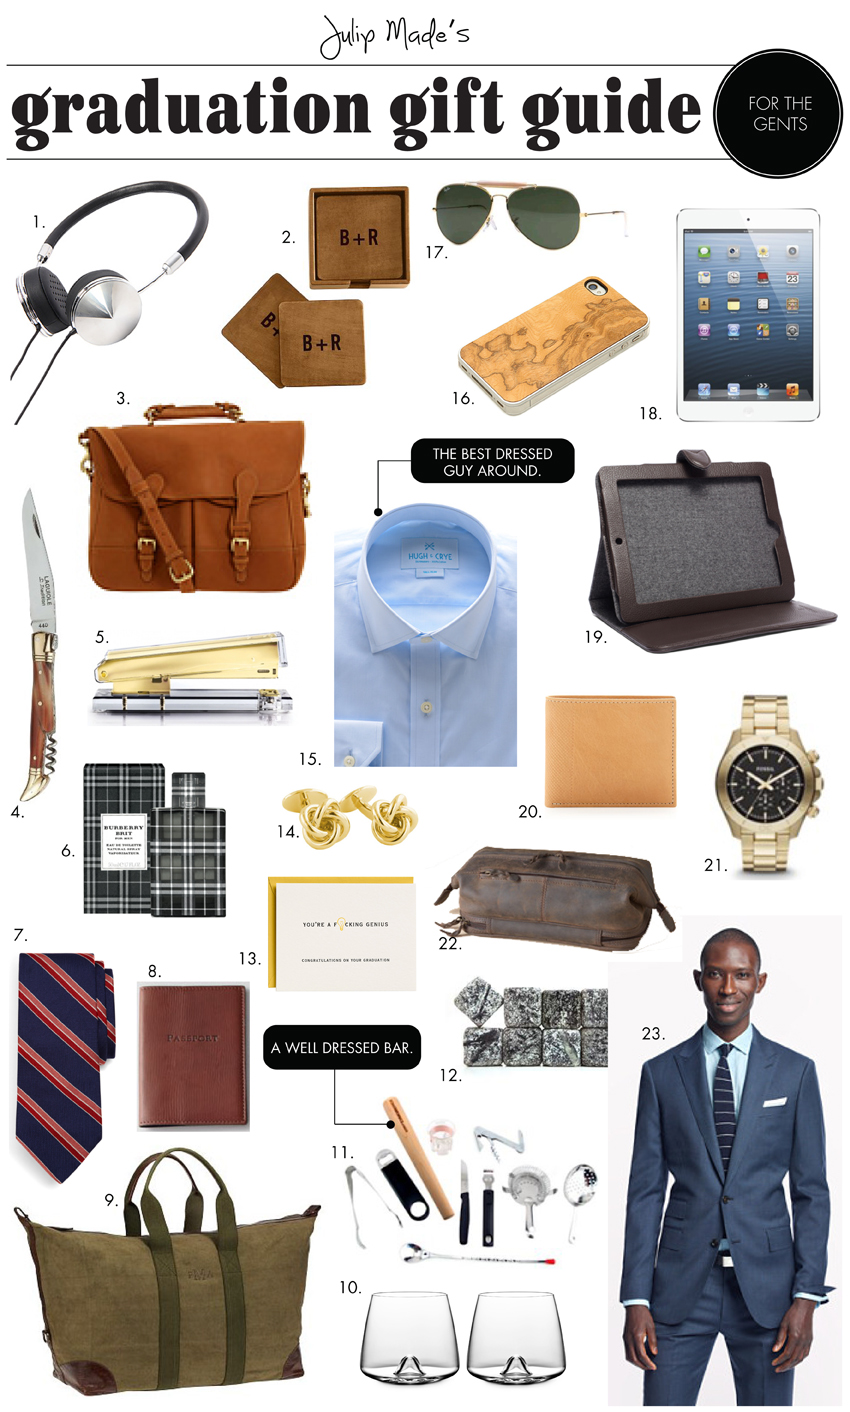 Julip Made graduation gift guide for the guys